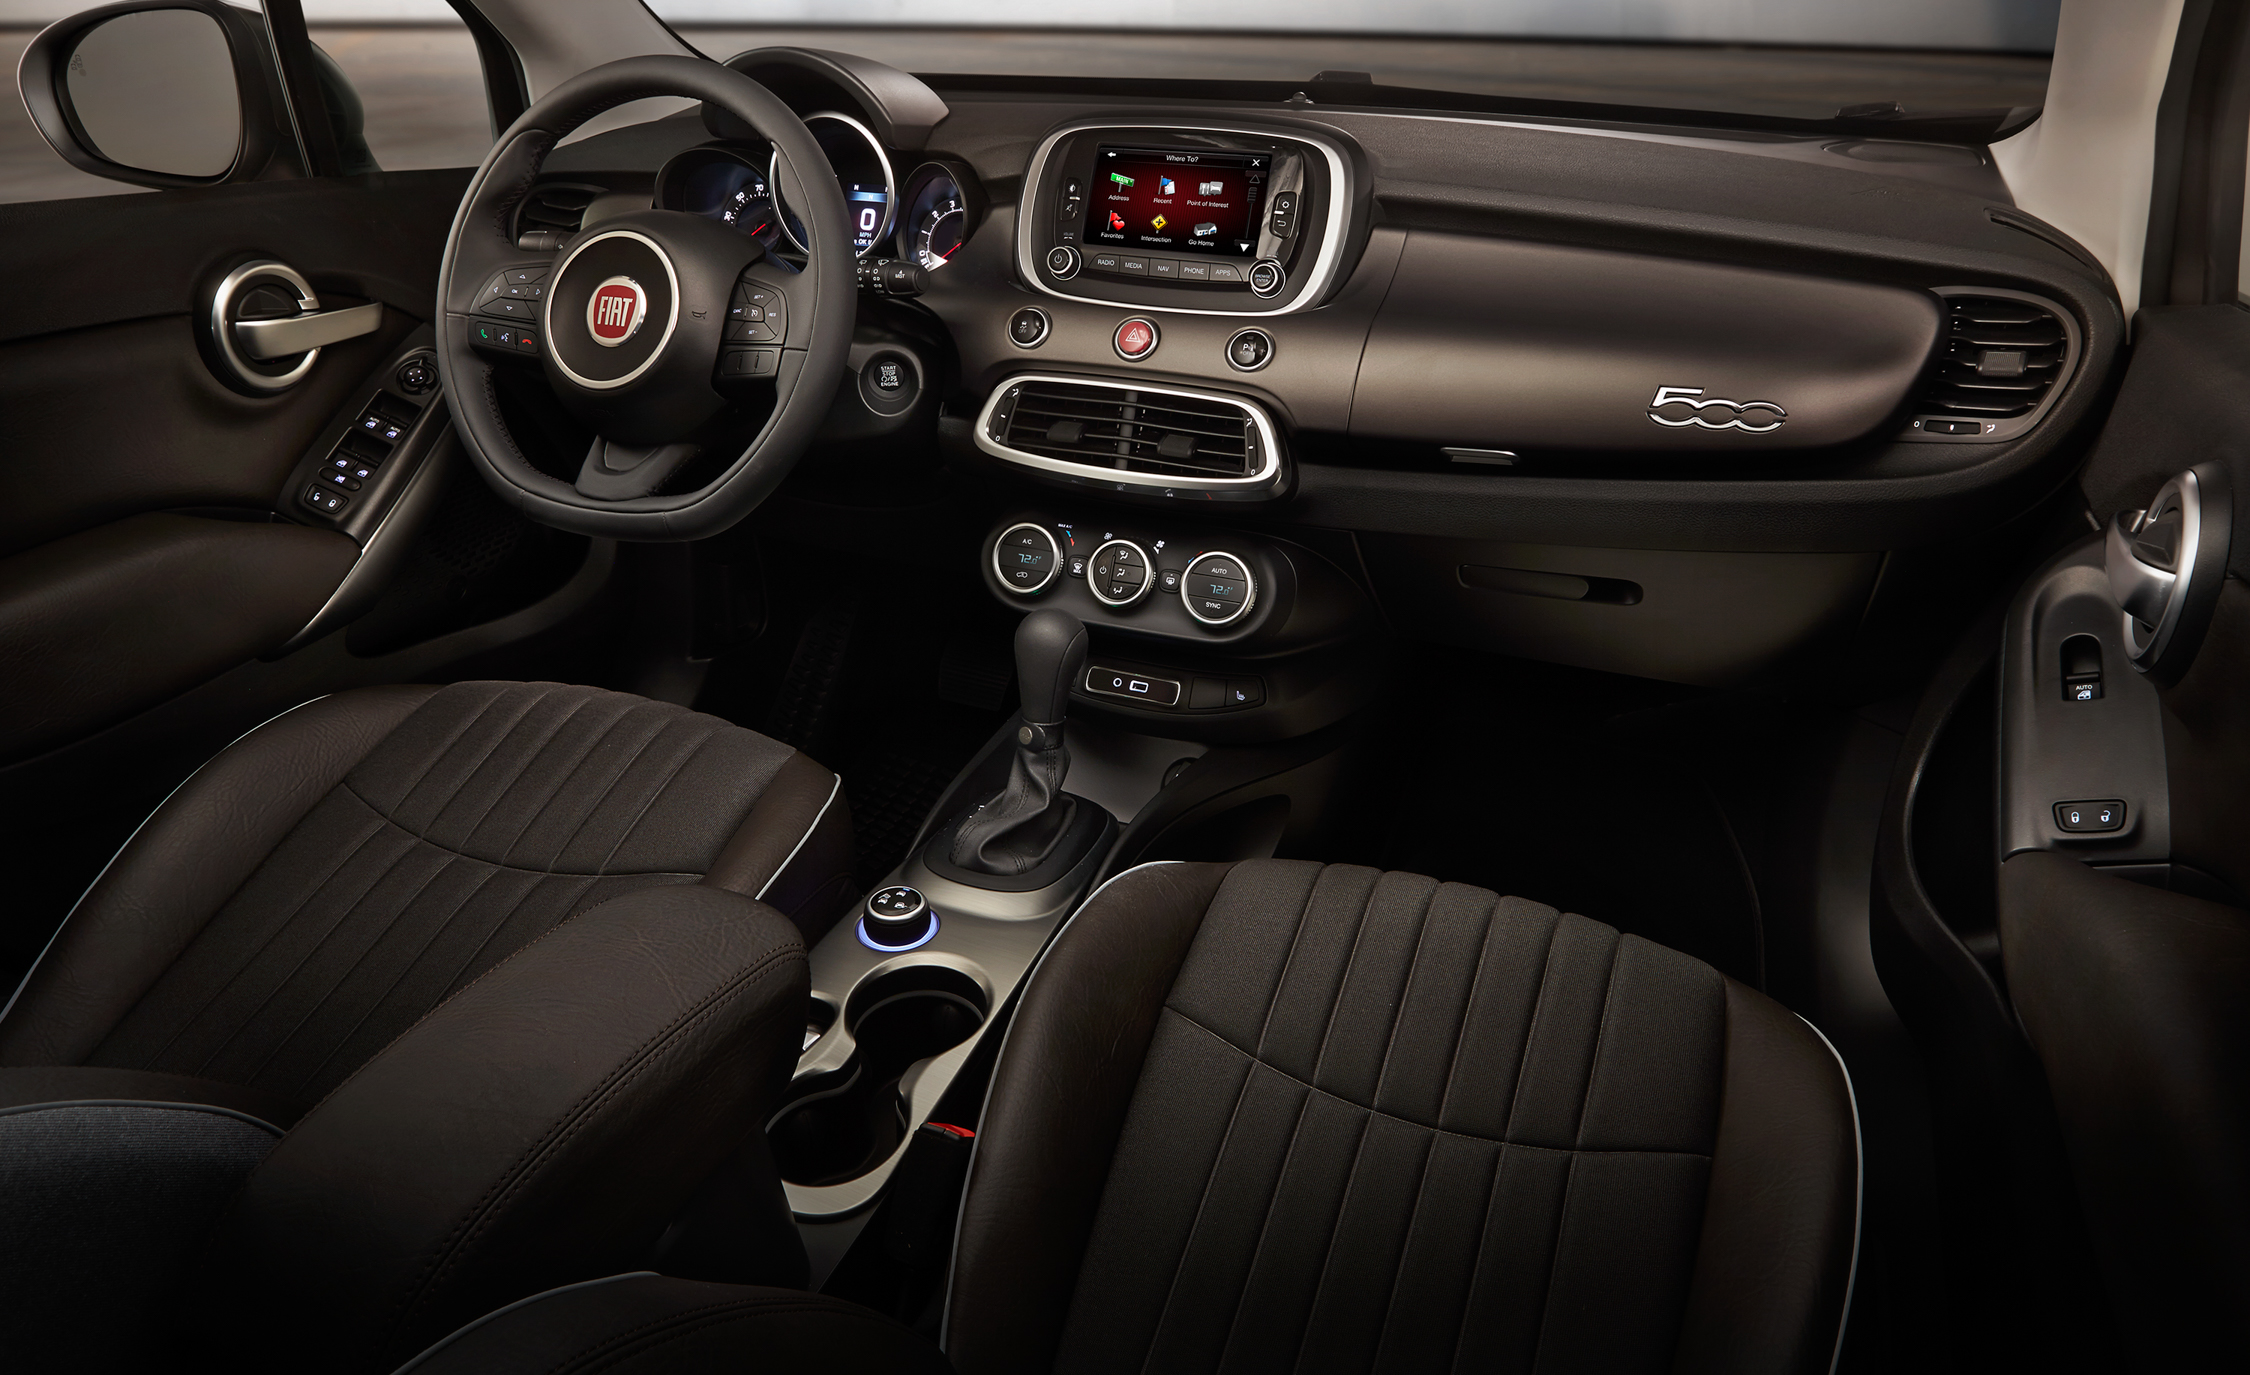 2016 Fiat 500X Lounge Interior Dashboard